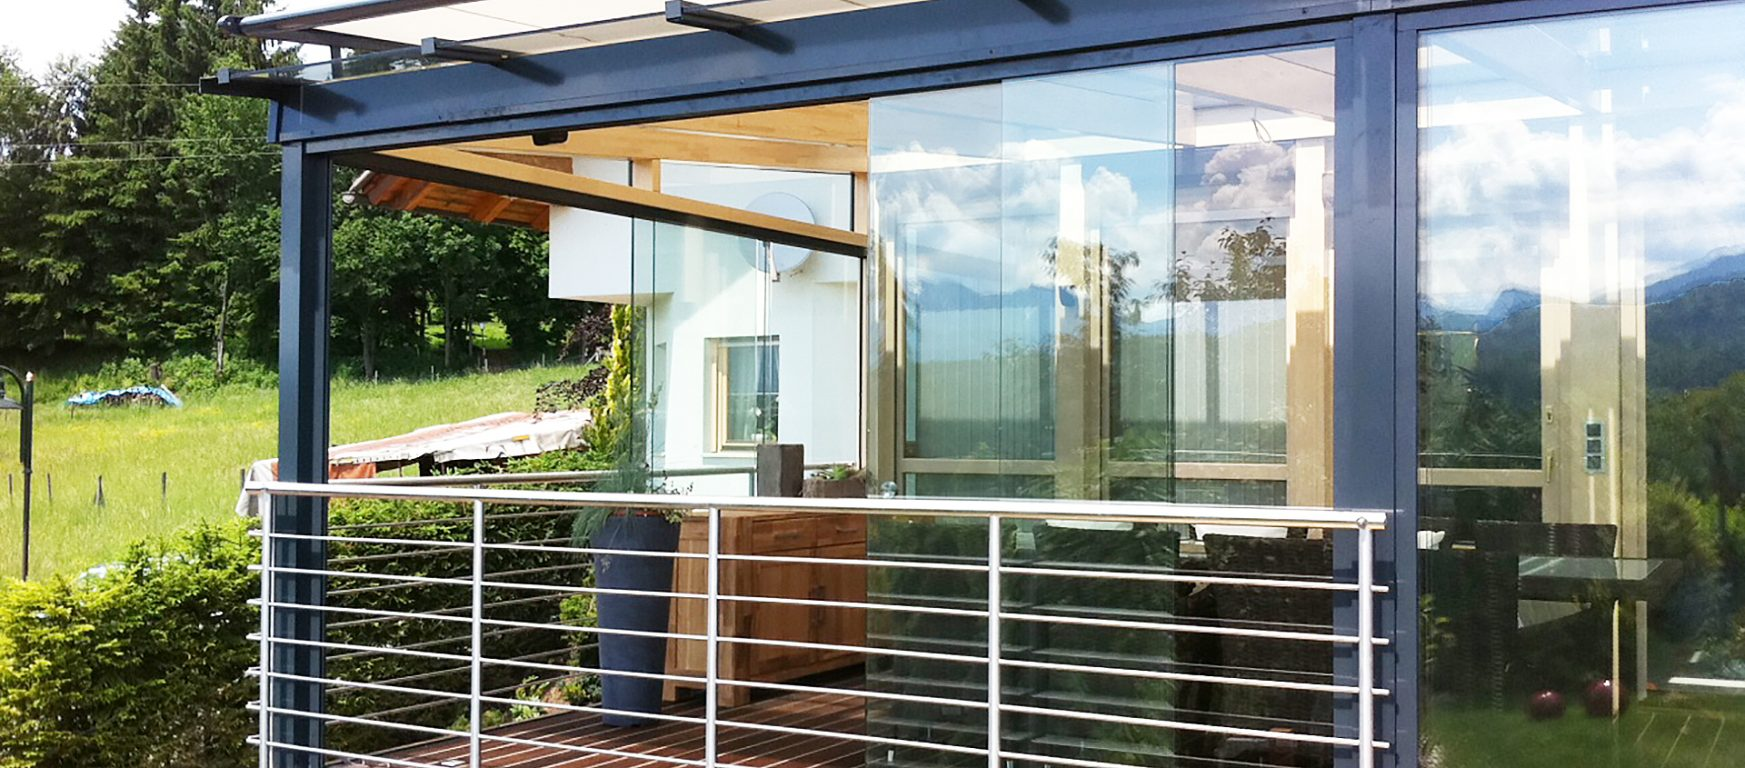 & SUNFLEX SF 20 All-Glass Multi-Track Sliding System by ModernfoldStyles